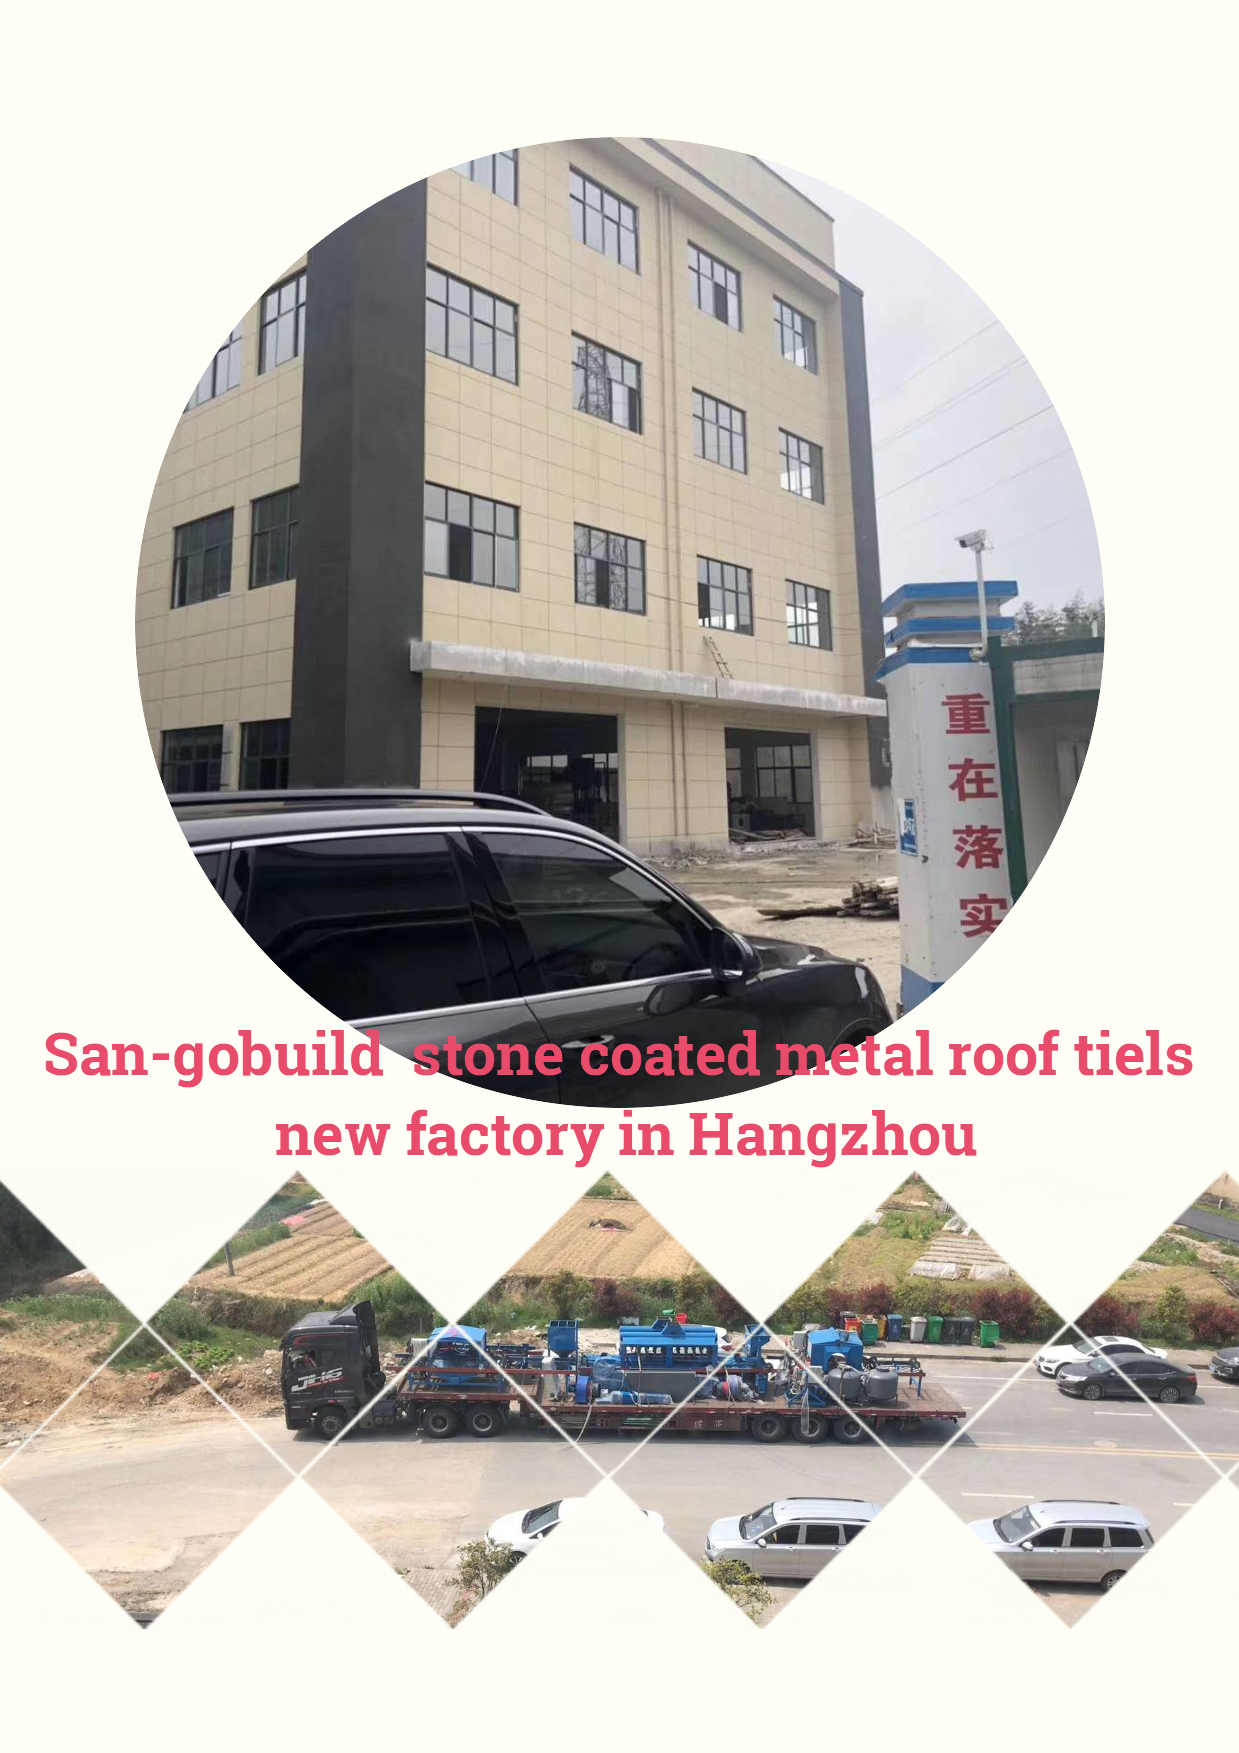 Our new factory for stone coated metal roof tiles producing in Hangzhou will be started very soon